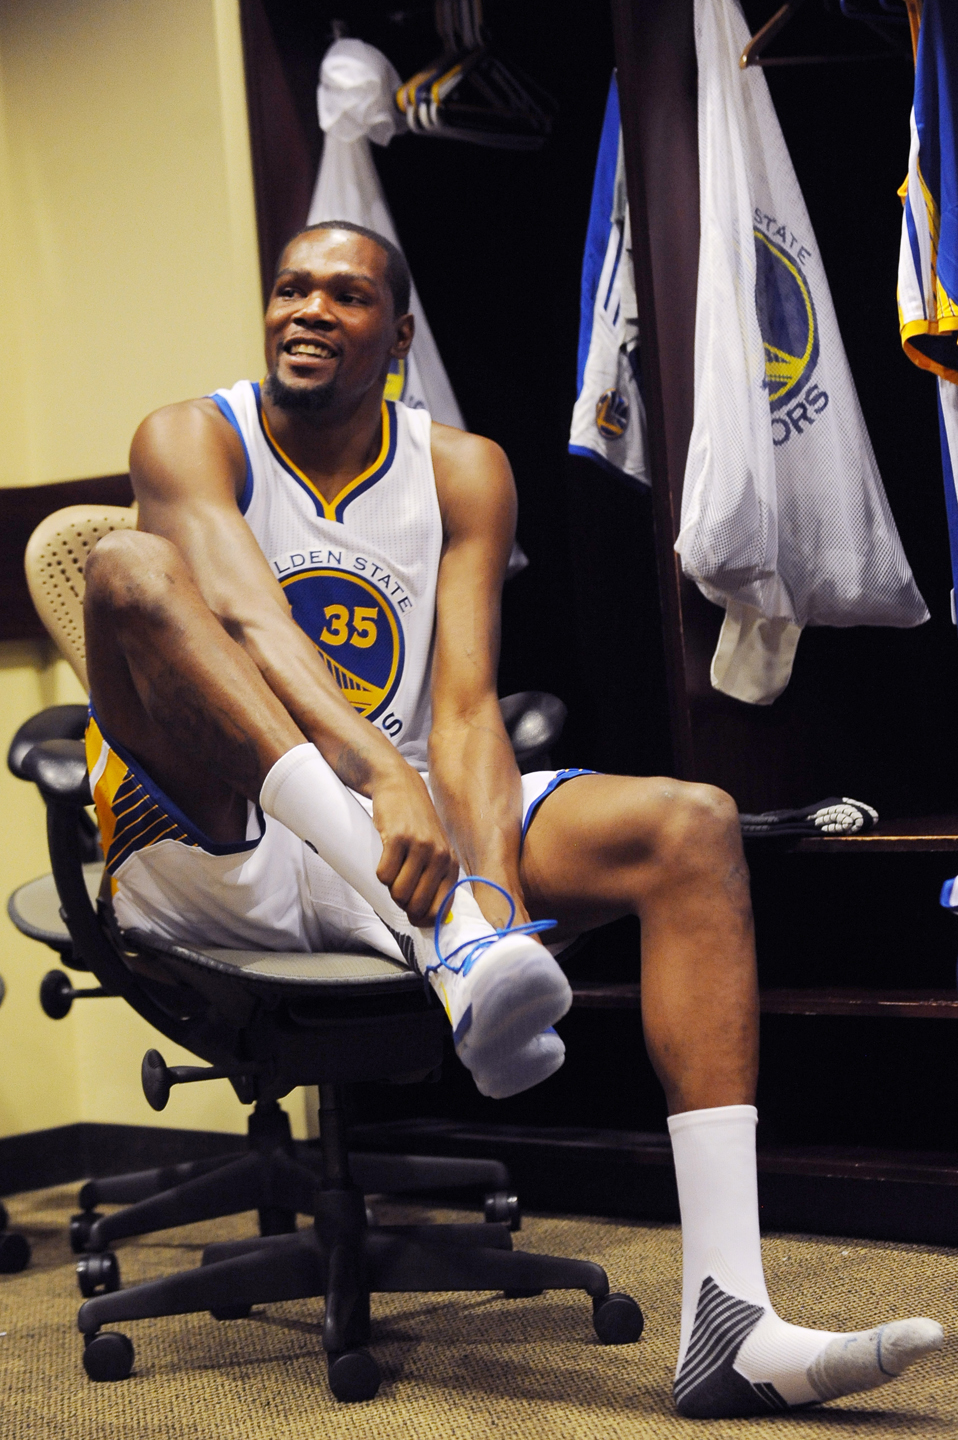 OAKLAND, CA - JULY 7: Kevin Durant #35 of the Golden State Warriors prepares in the locker room before his introductory press conference on July 7, 2016 in Oakland, California.